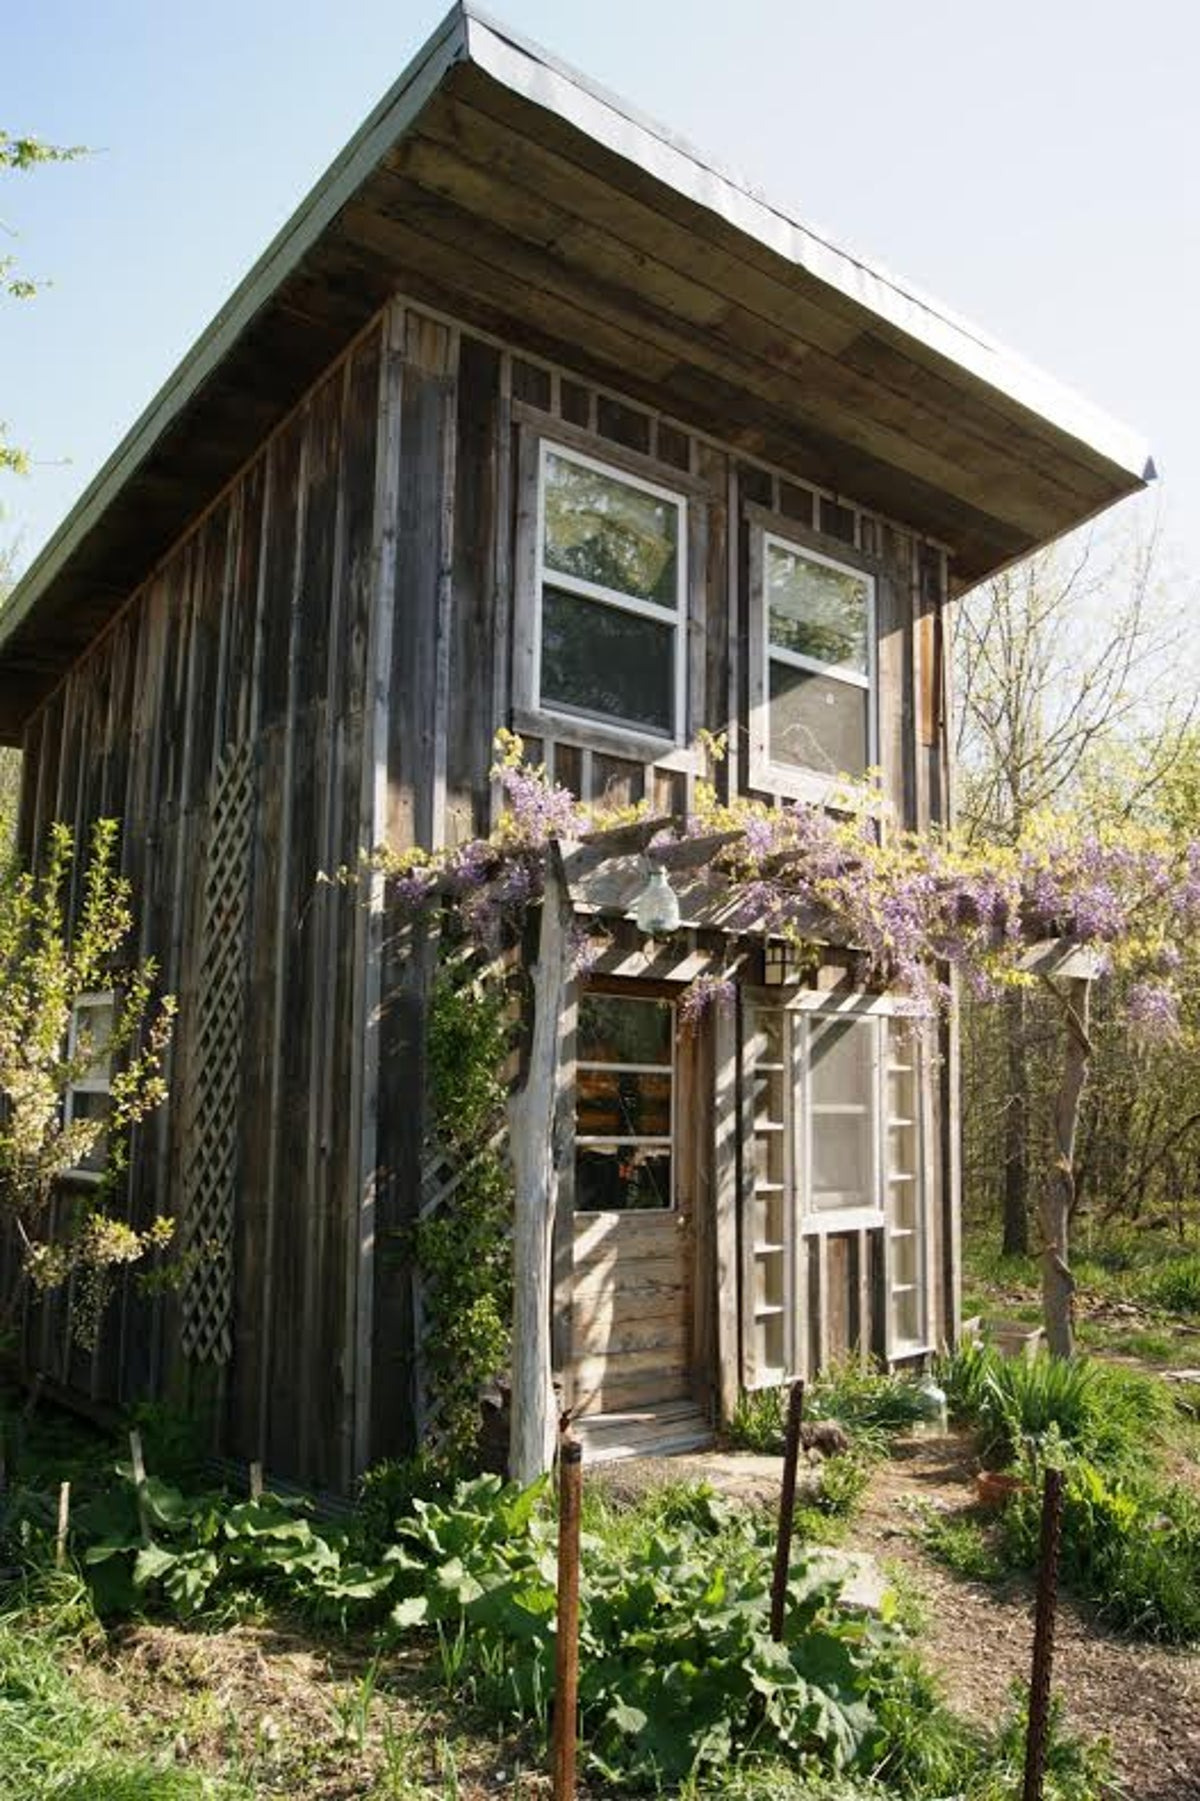 100 000 Square Foot House Luxury How Much Does A Tiny House Cost Tiny House Blog